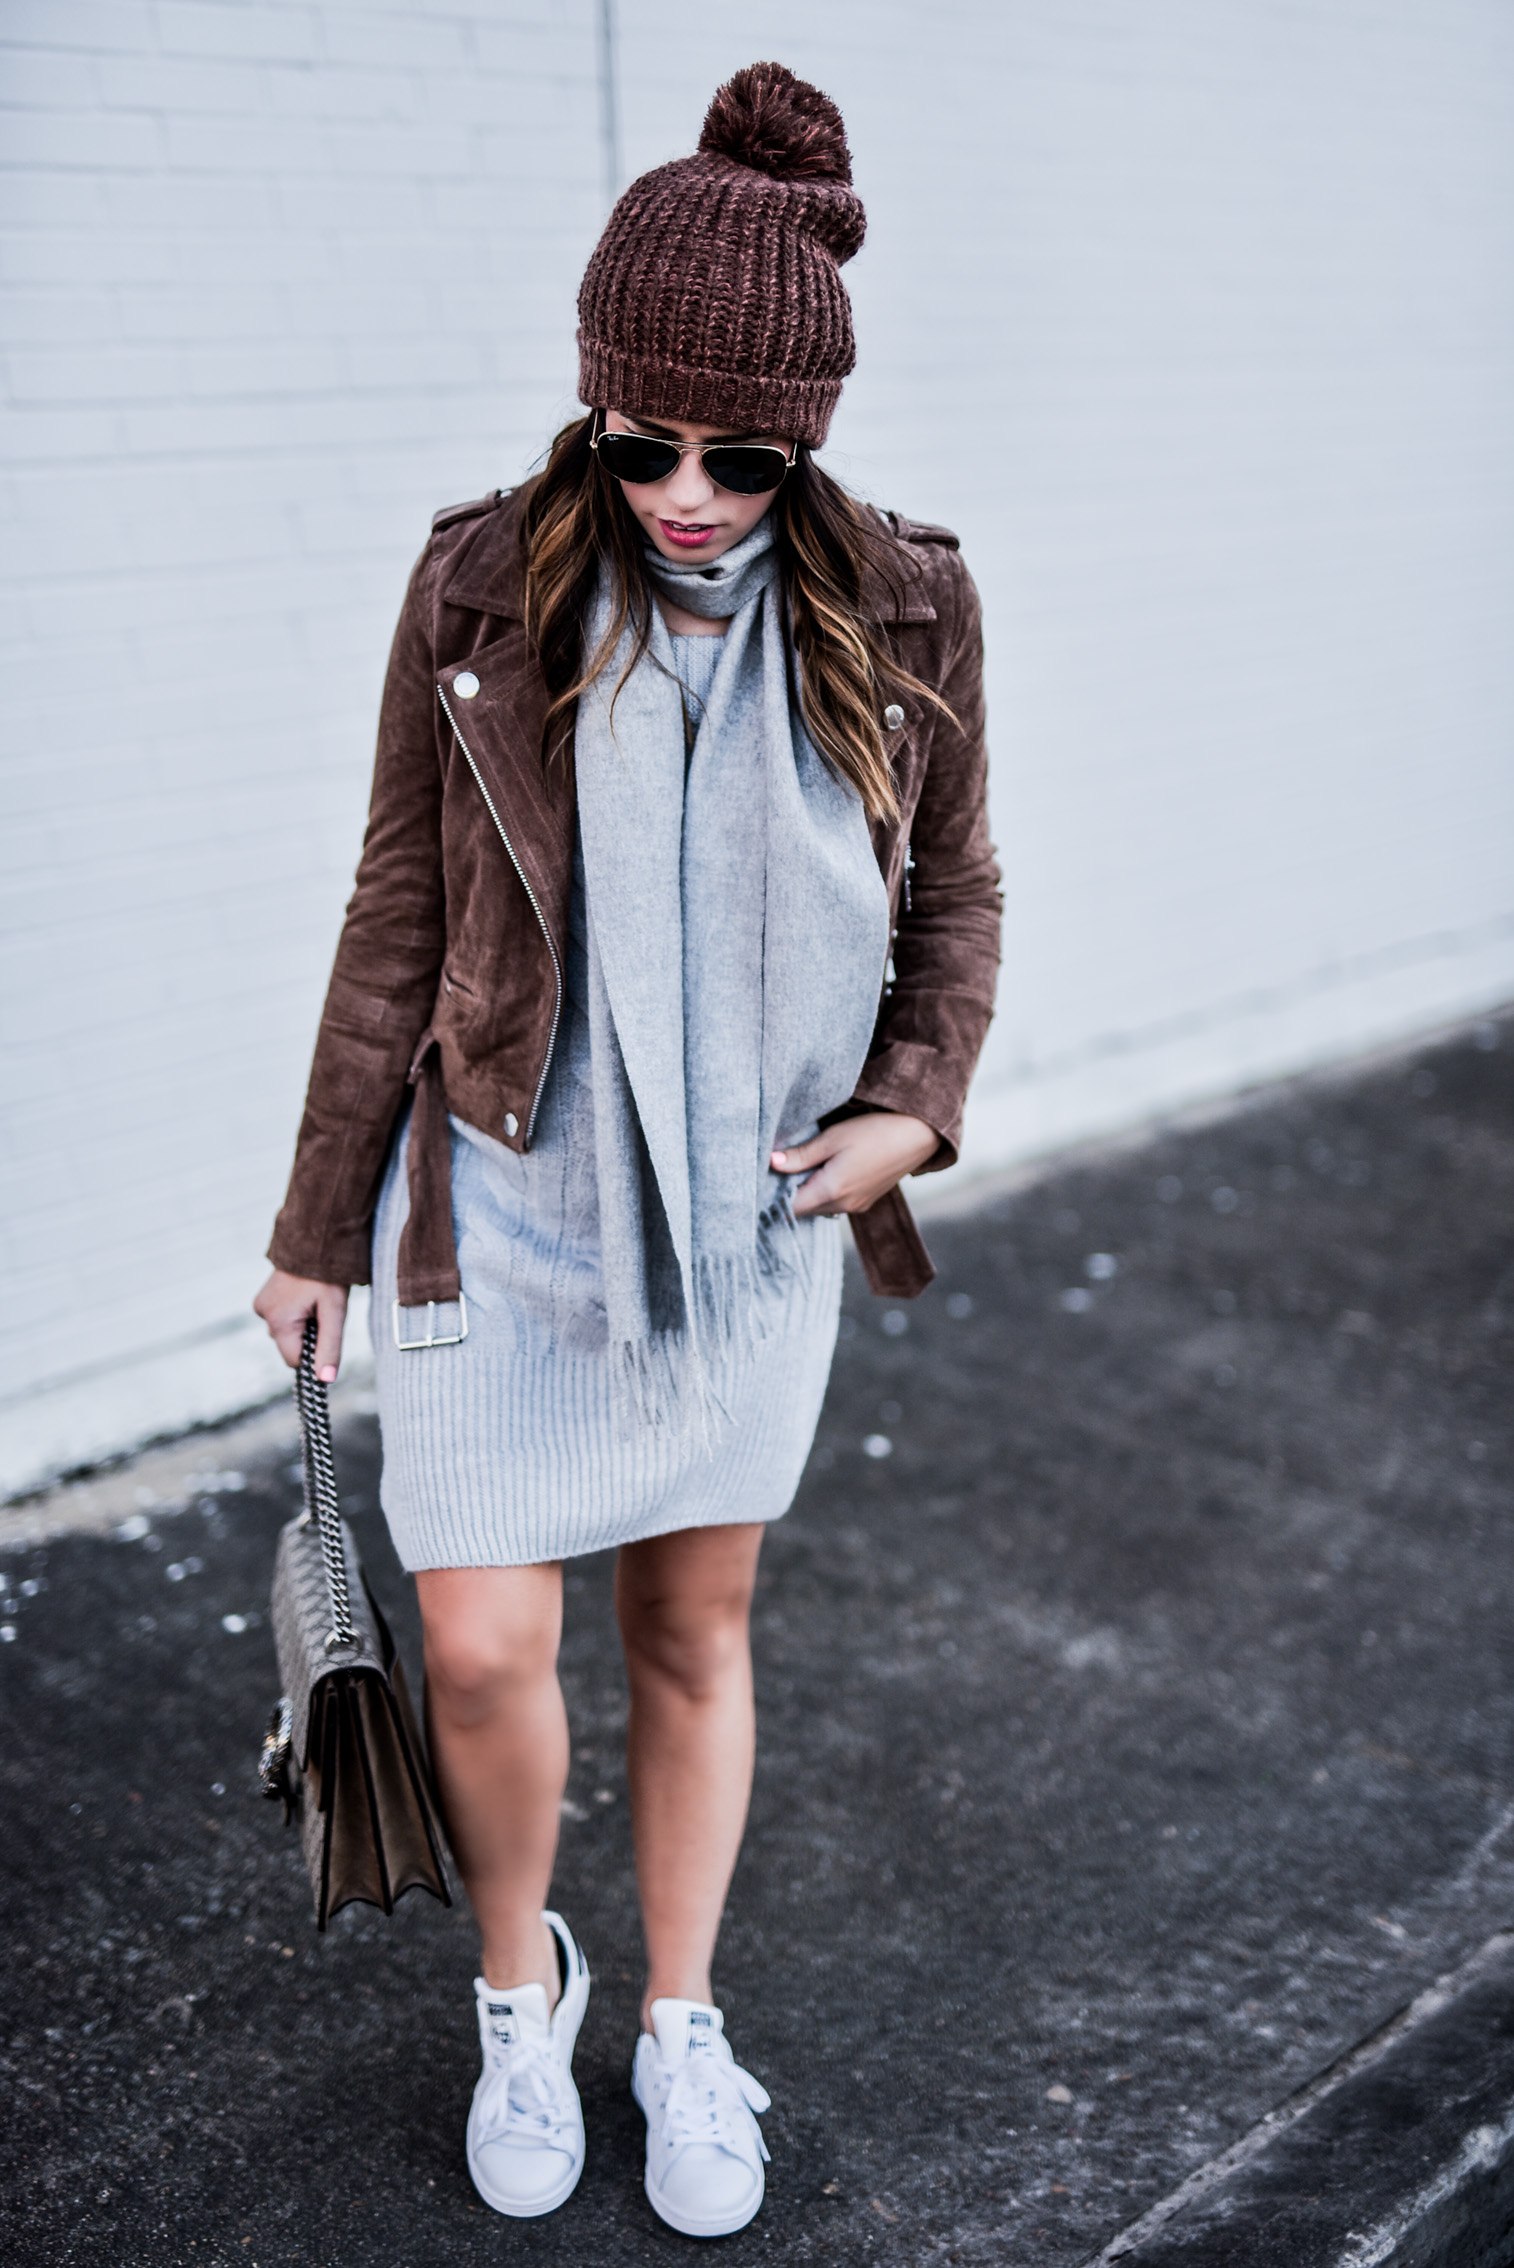 Flaunt and Center chunky knit and suede | Houston fashion and style blogger Tiffany Jais wearing an grey ASOS sweater dress and a blank NYC suede moto jacket, click here for more details | What's trending in women's fashion